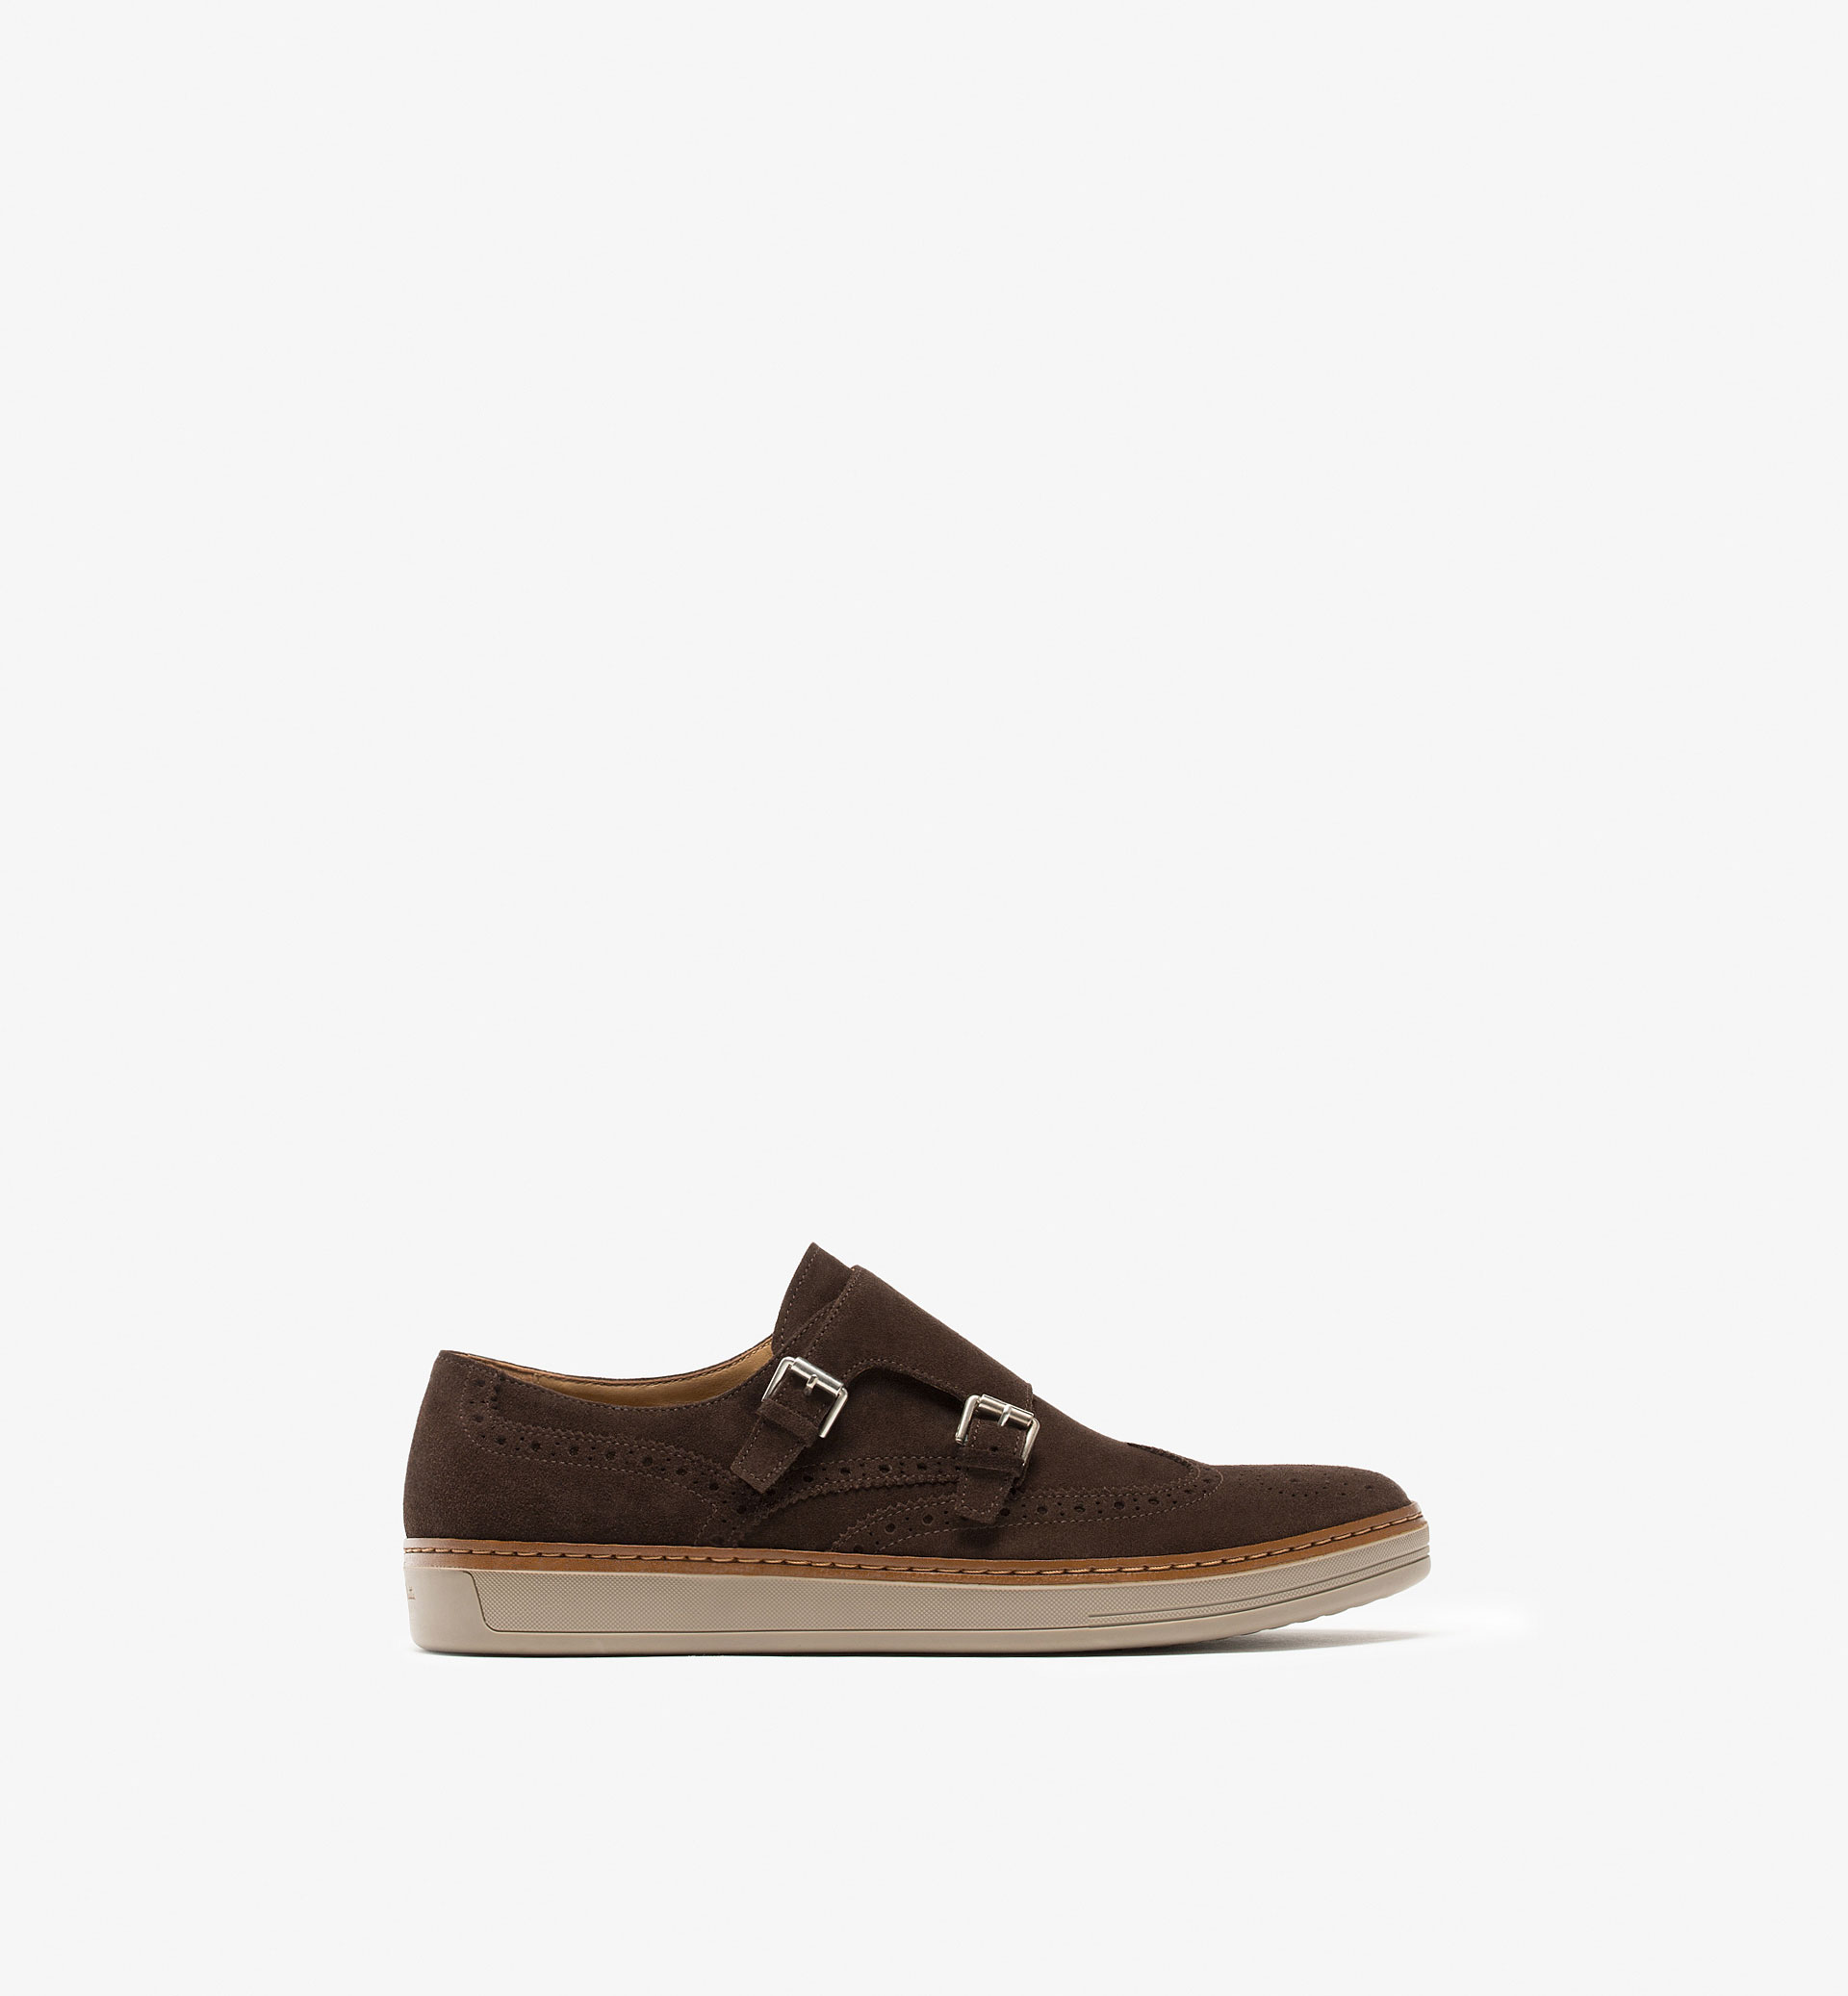 SPLIT SUEDE BUCKLED LEATHER SNEAKERS